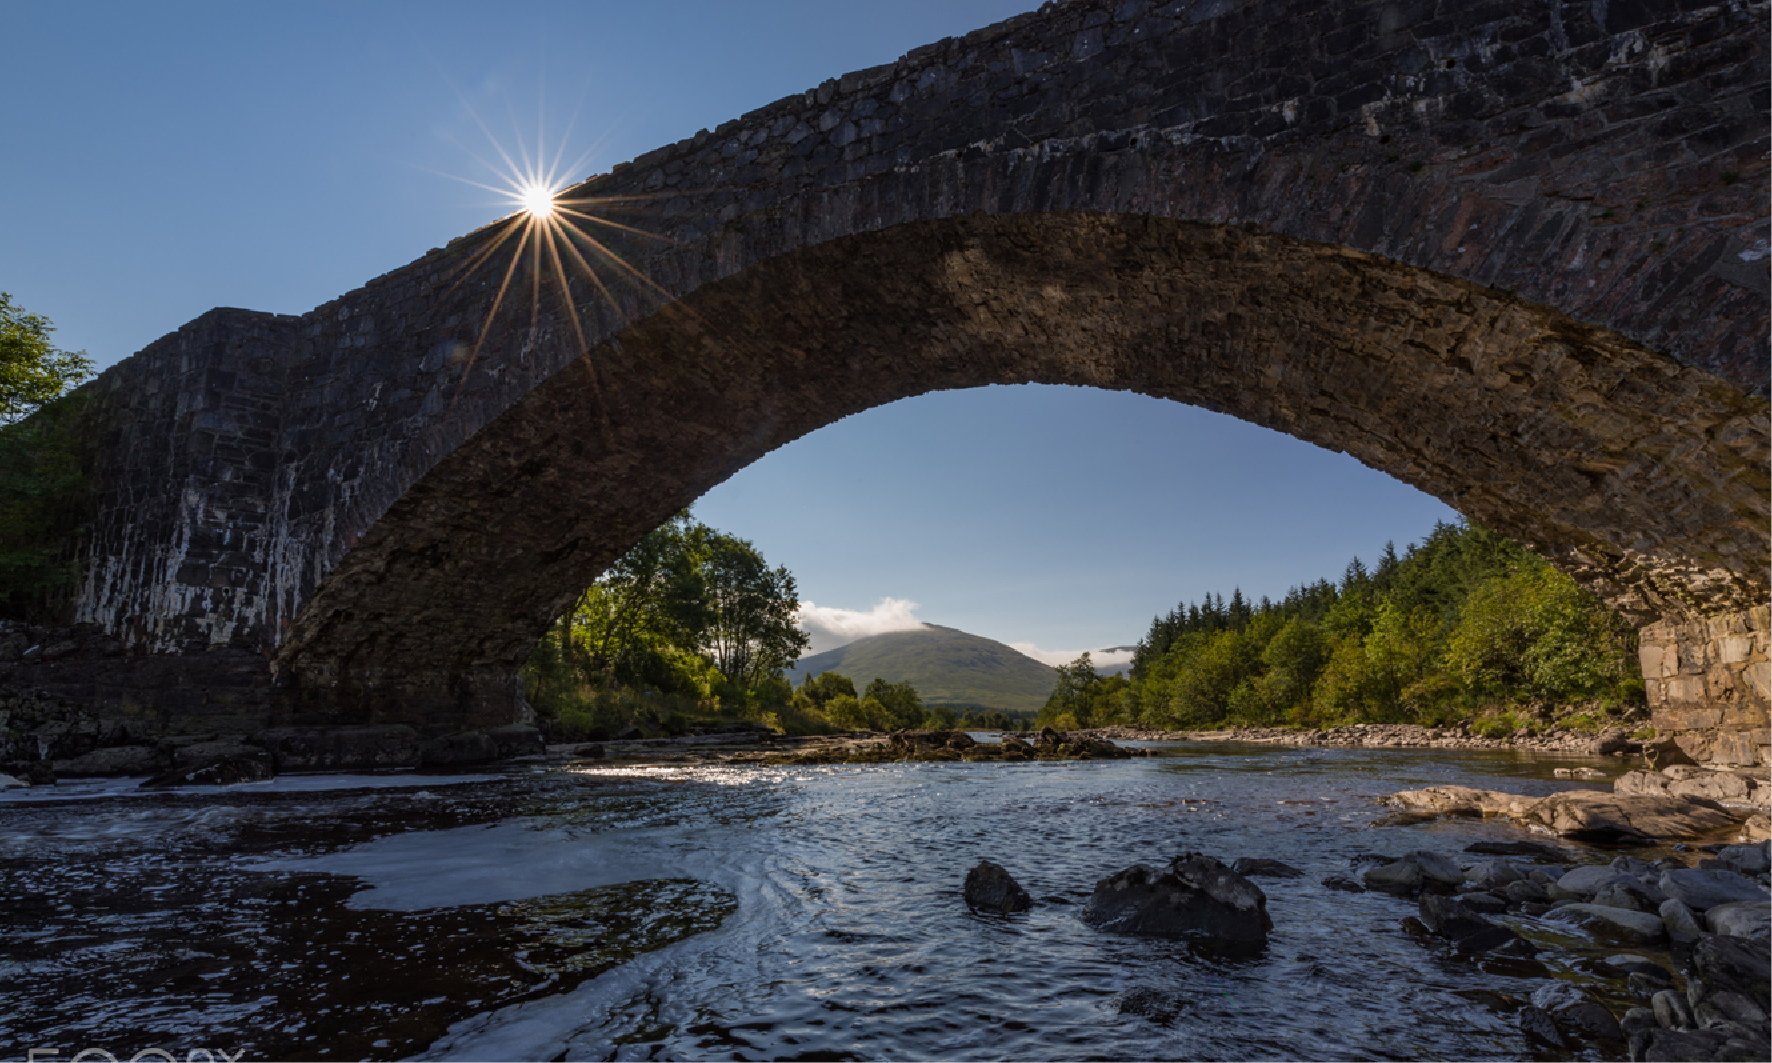 The Bridge of Orchy from Below